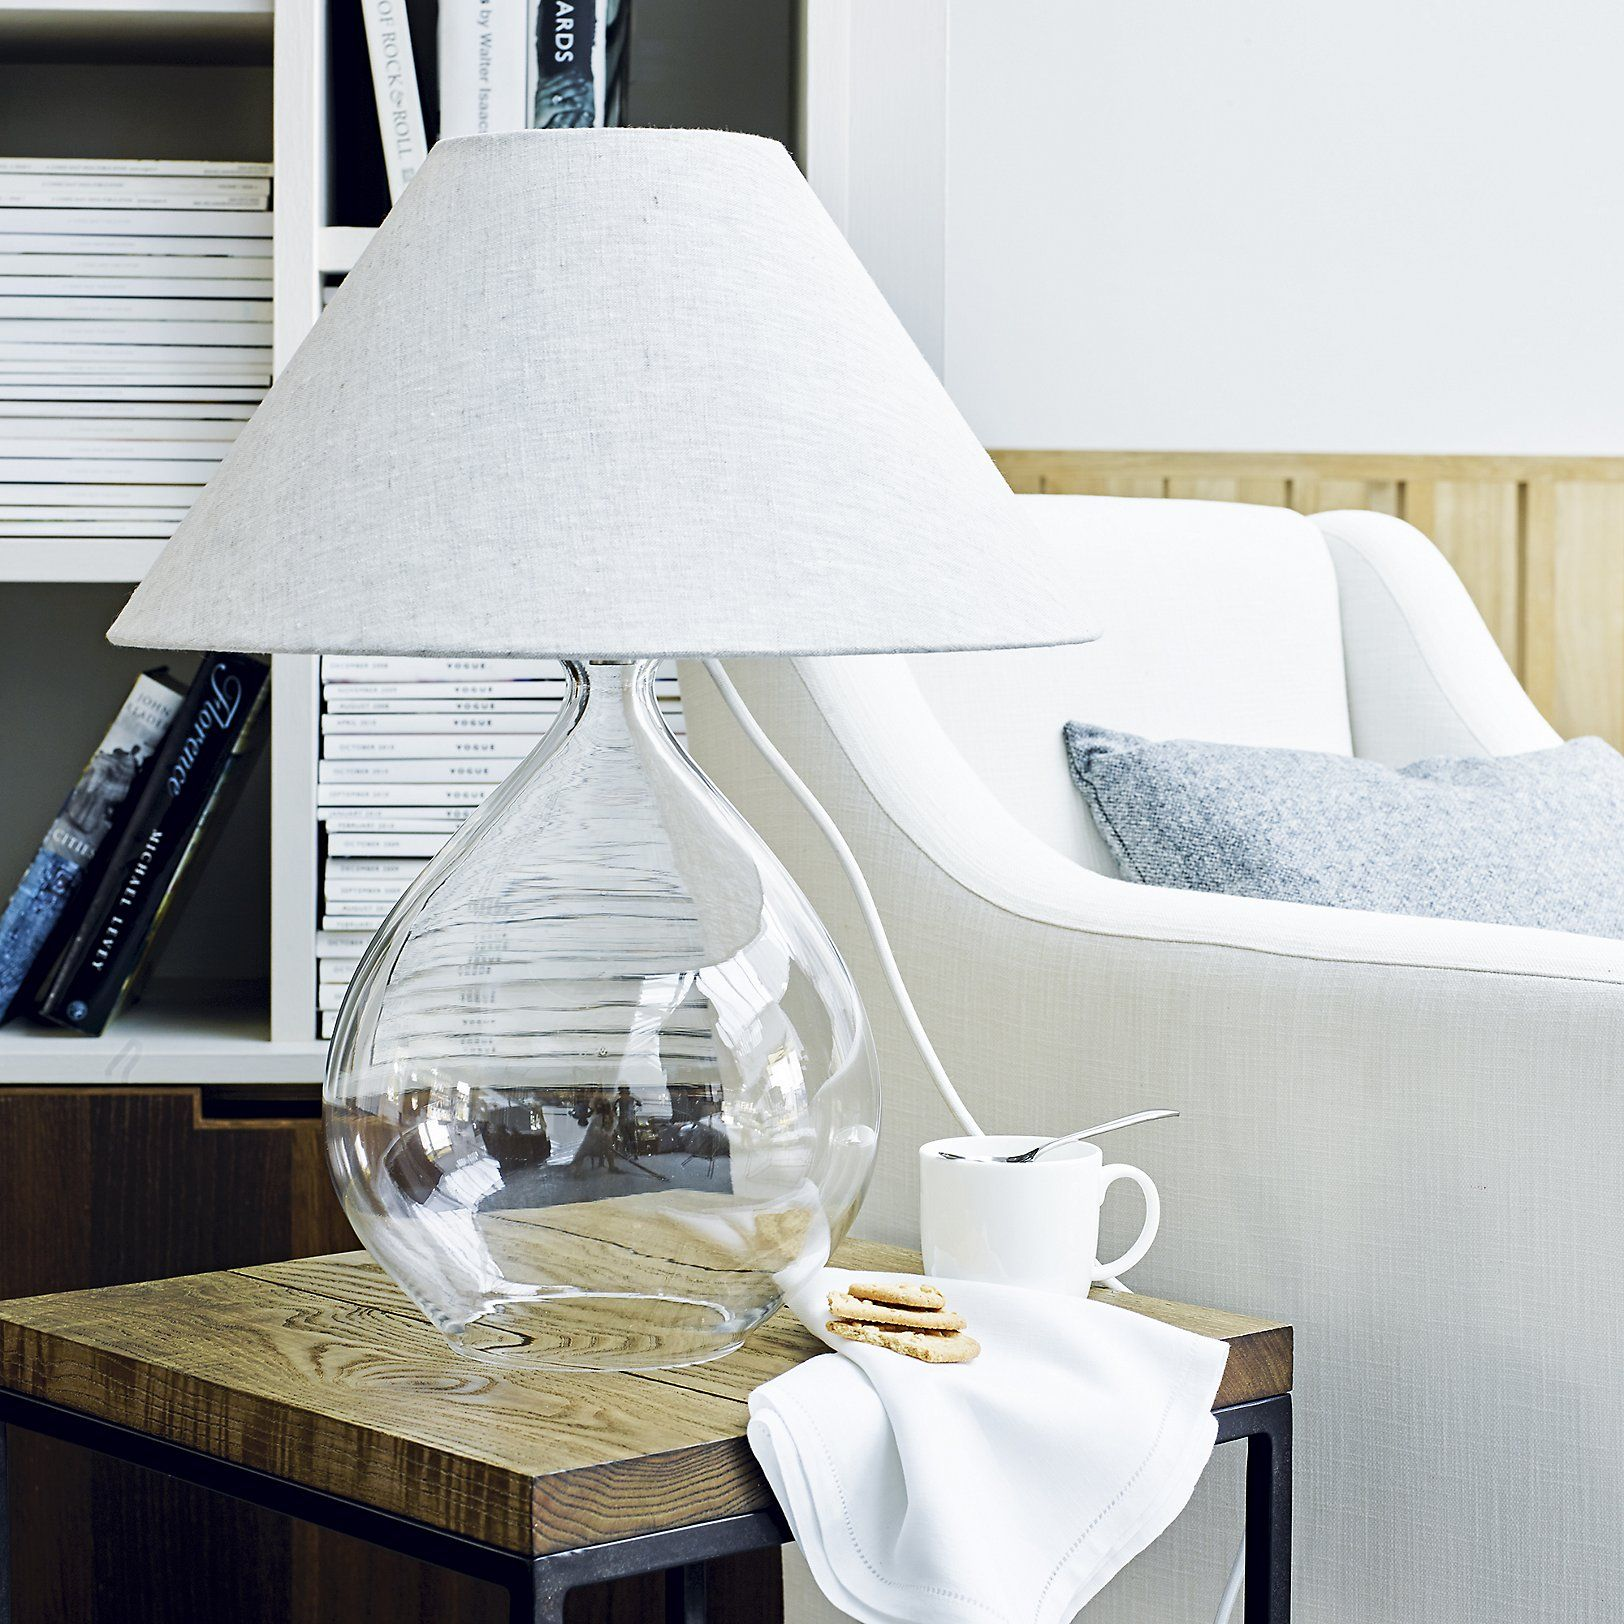 Ensure That Your Home Has A Truly Warming Atmosphere All Year Round Browse The White Company S Latest Collection Of Elegantly Styled Table Lamps Today